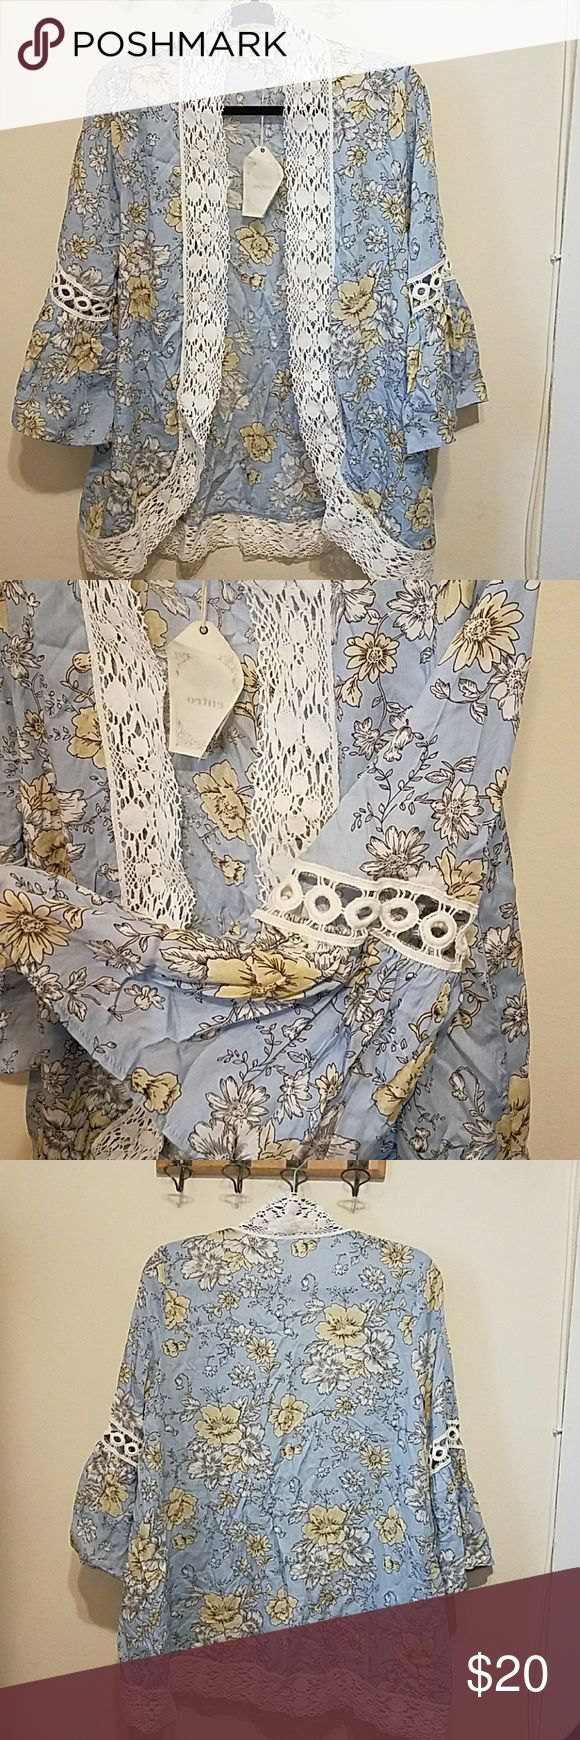 Blue floral kimono Light blue floral kimono with crocheted lace trim and bell sleeves. Hits at forearm, rayon, nwt, tts, Apricot Lane Tops Tunics